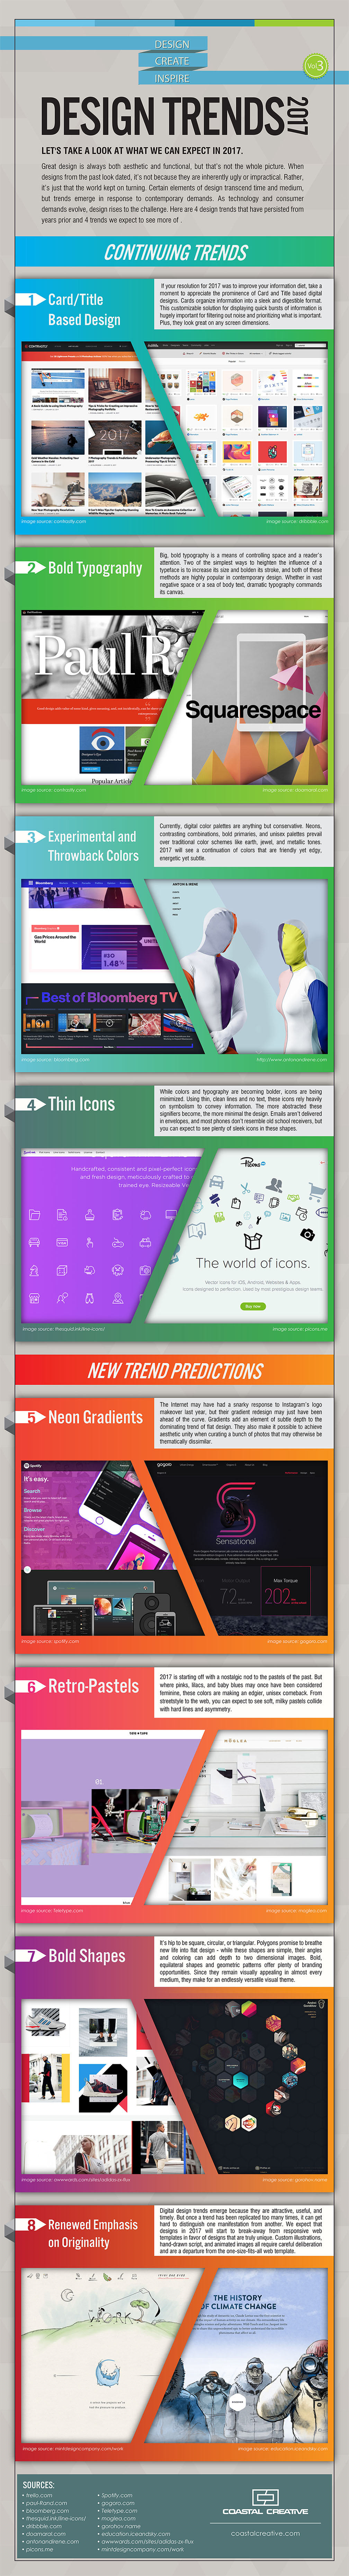 Design_Trends_2017-Infographic-1.jpg